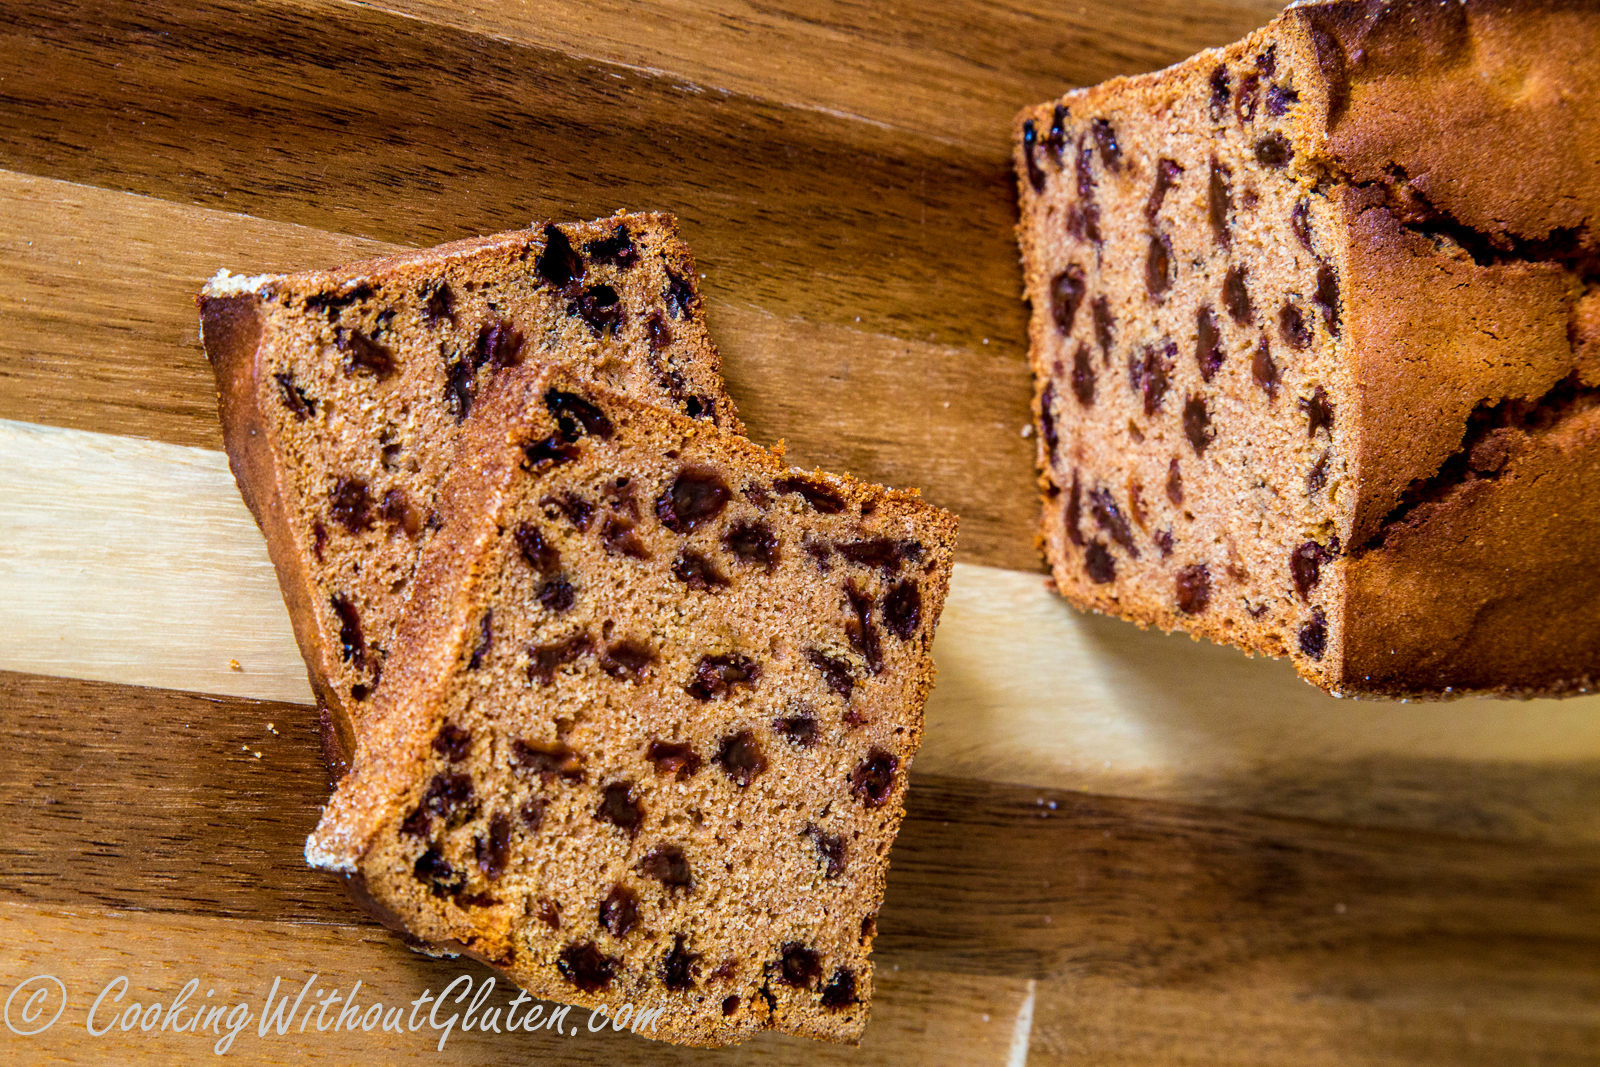 Gluten Free Apple Cinnamon and Raisin Loaf Cake